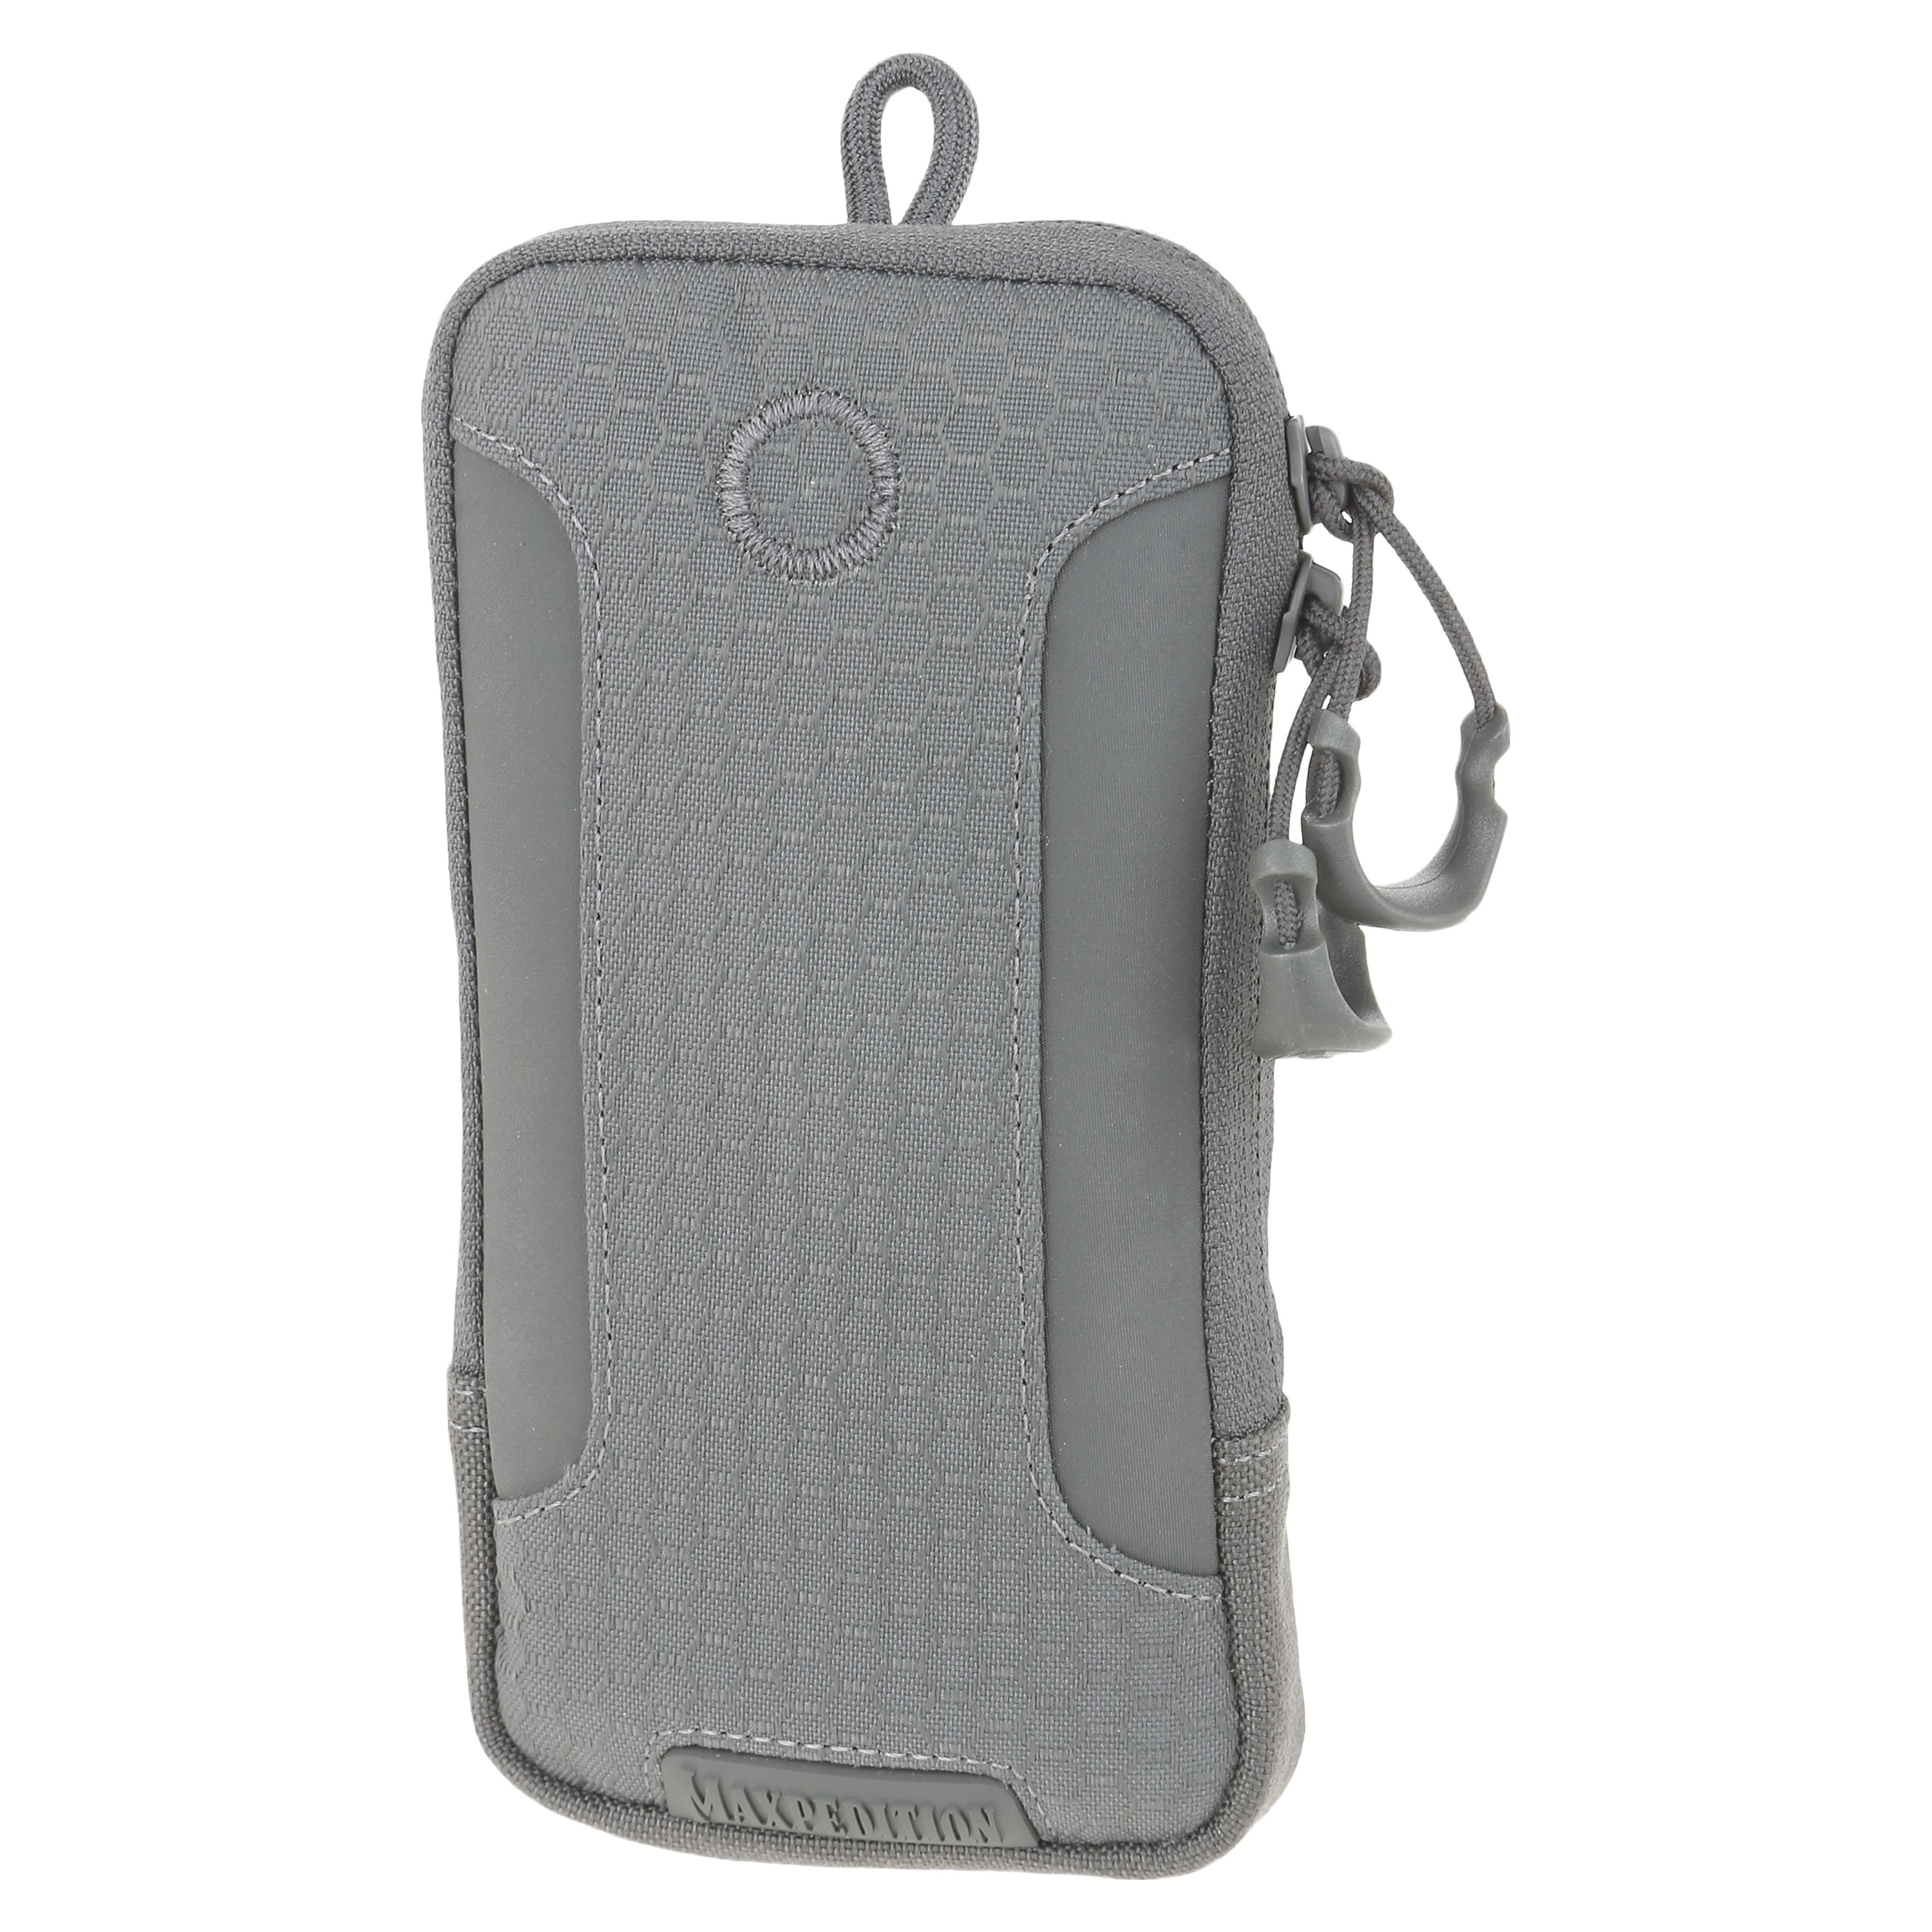 Maxpedition Pochette iPhone 6/6S/7 Plus gris